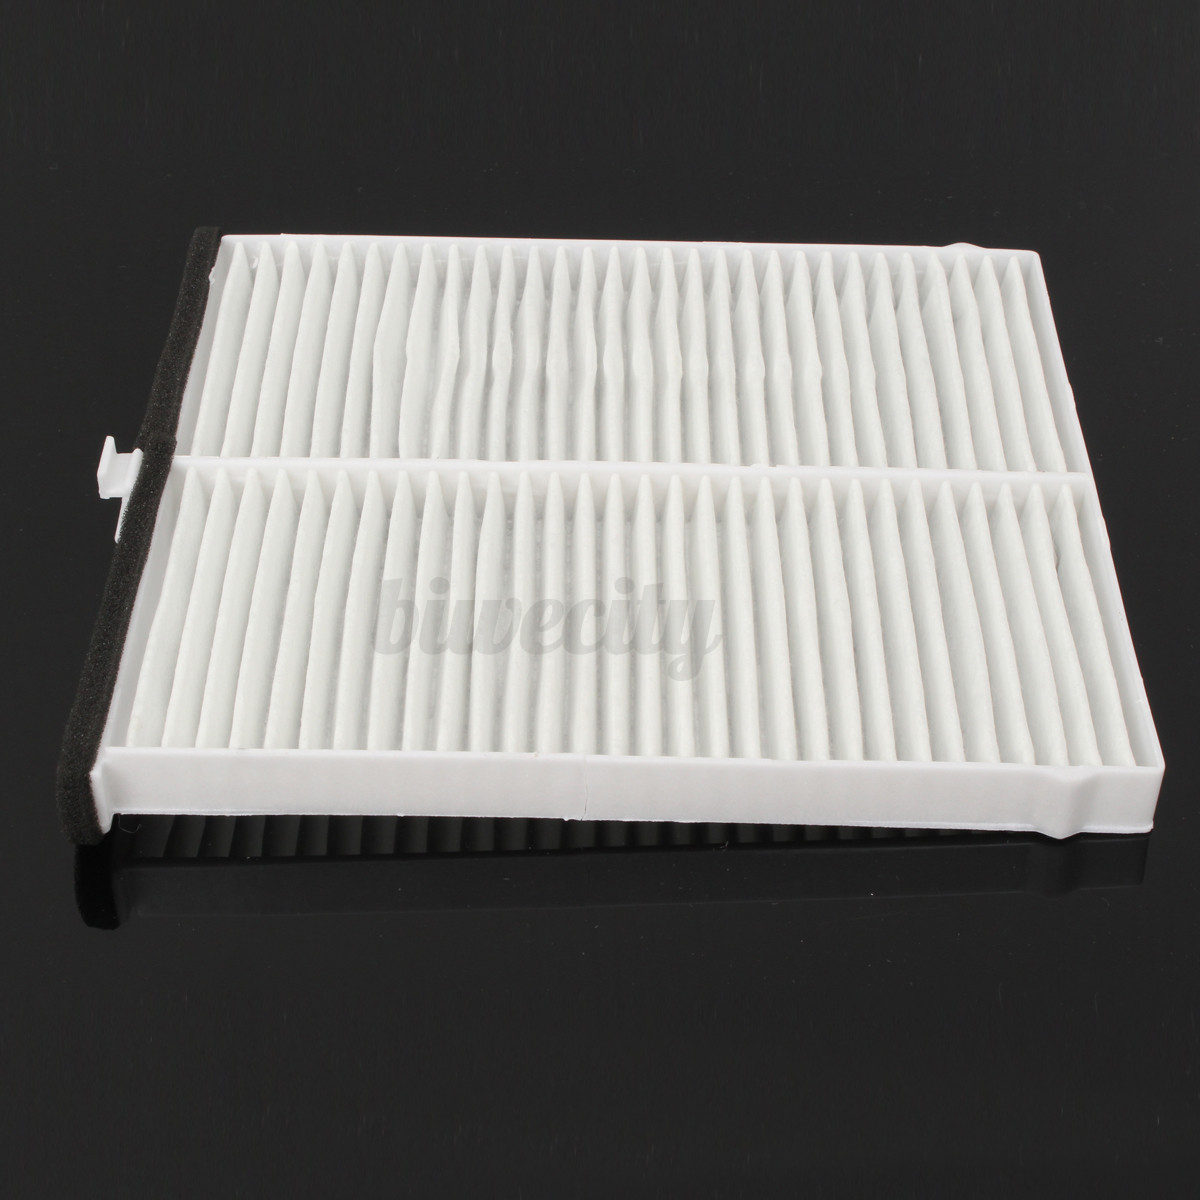 1pc cabin air dust filter replacement fits for mazda 3 6. Black Bedroom Furniture Sets. Home Design Ideas